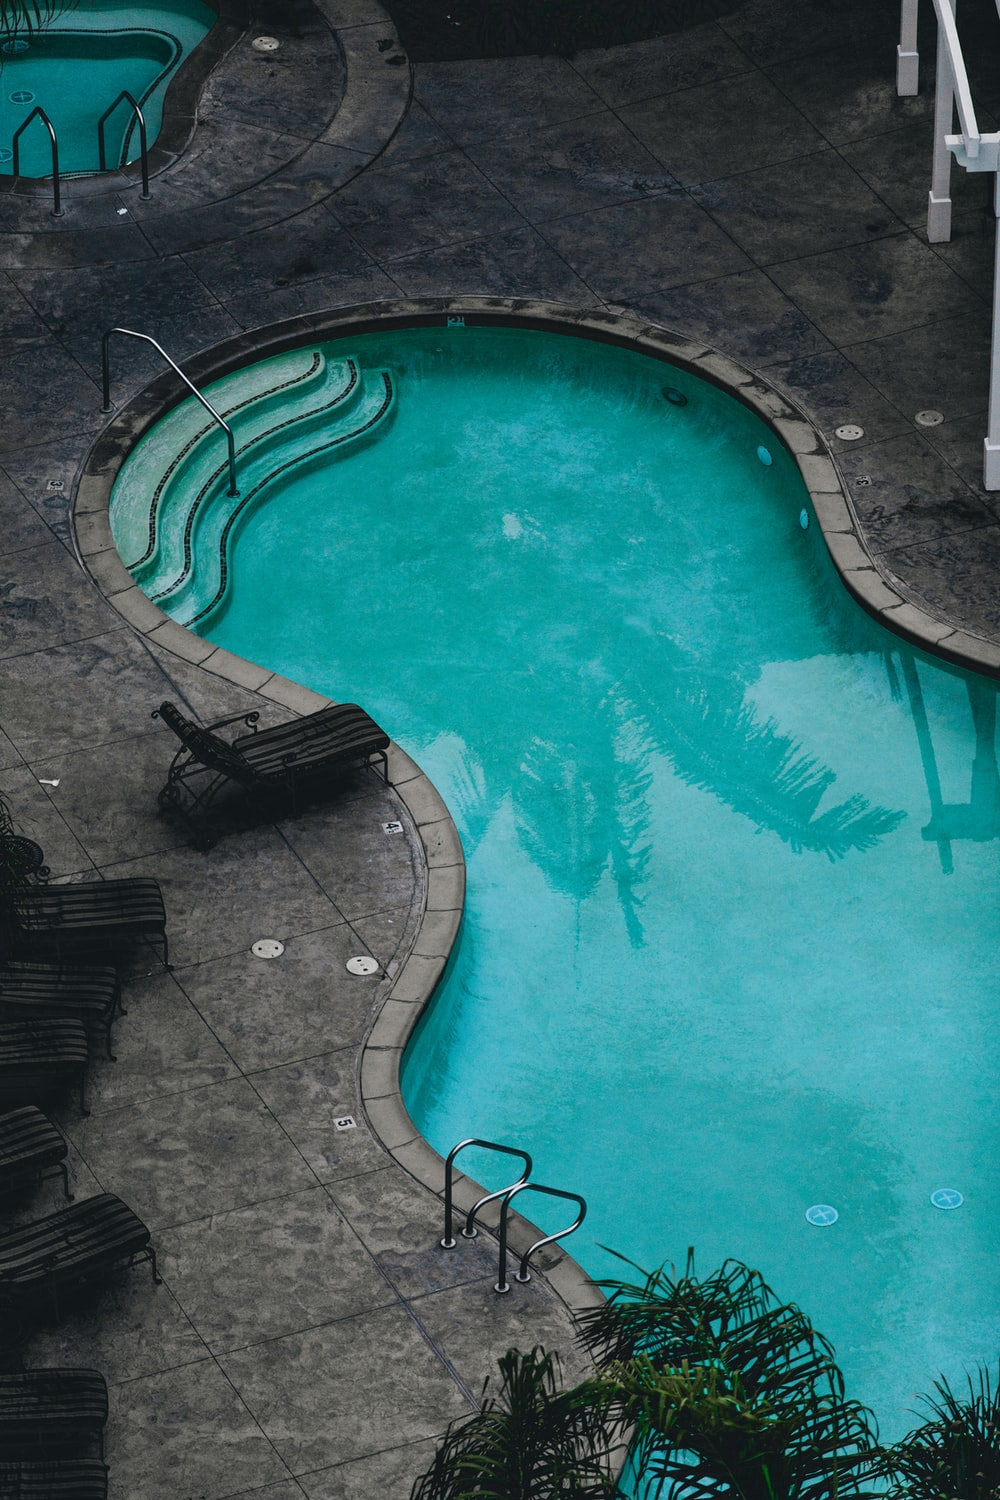 swimming pool during daytime in aerial view photography